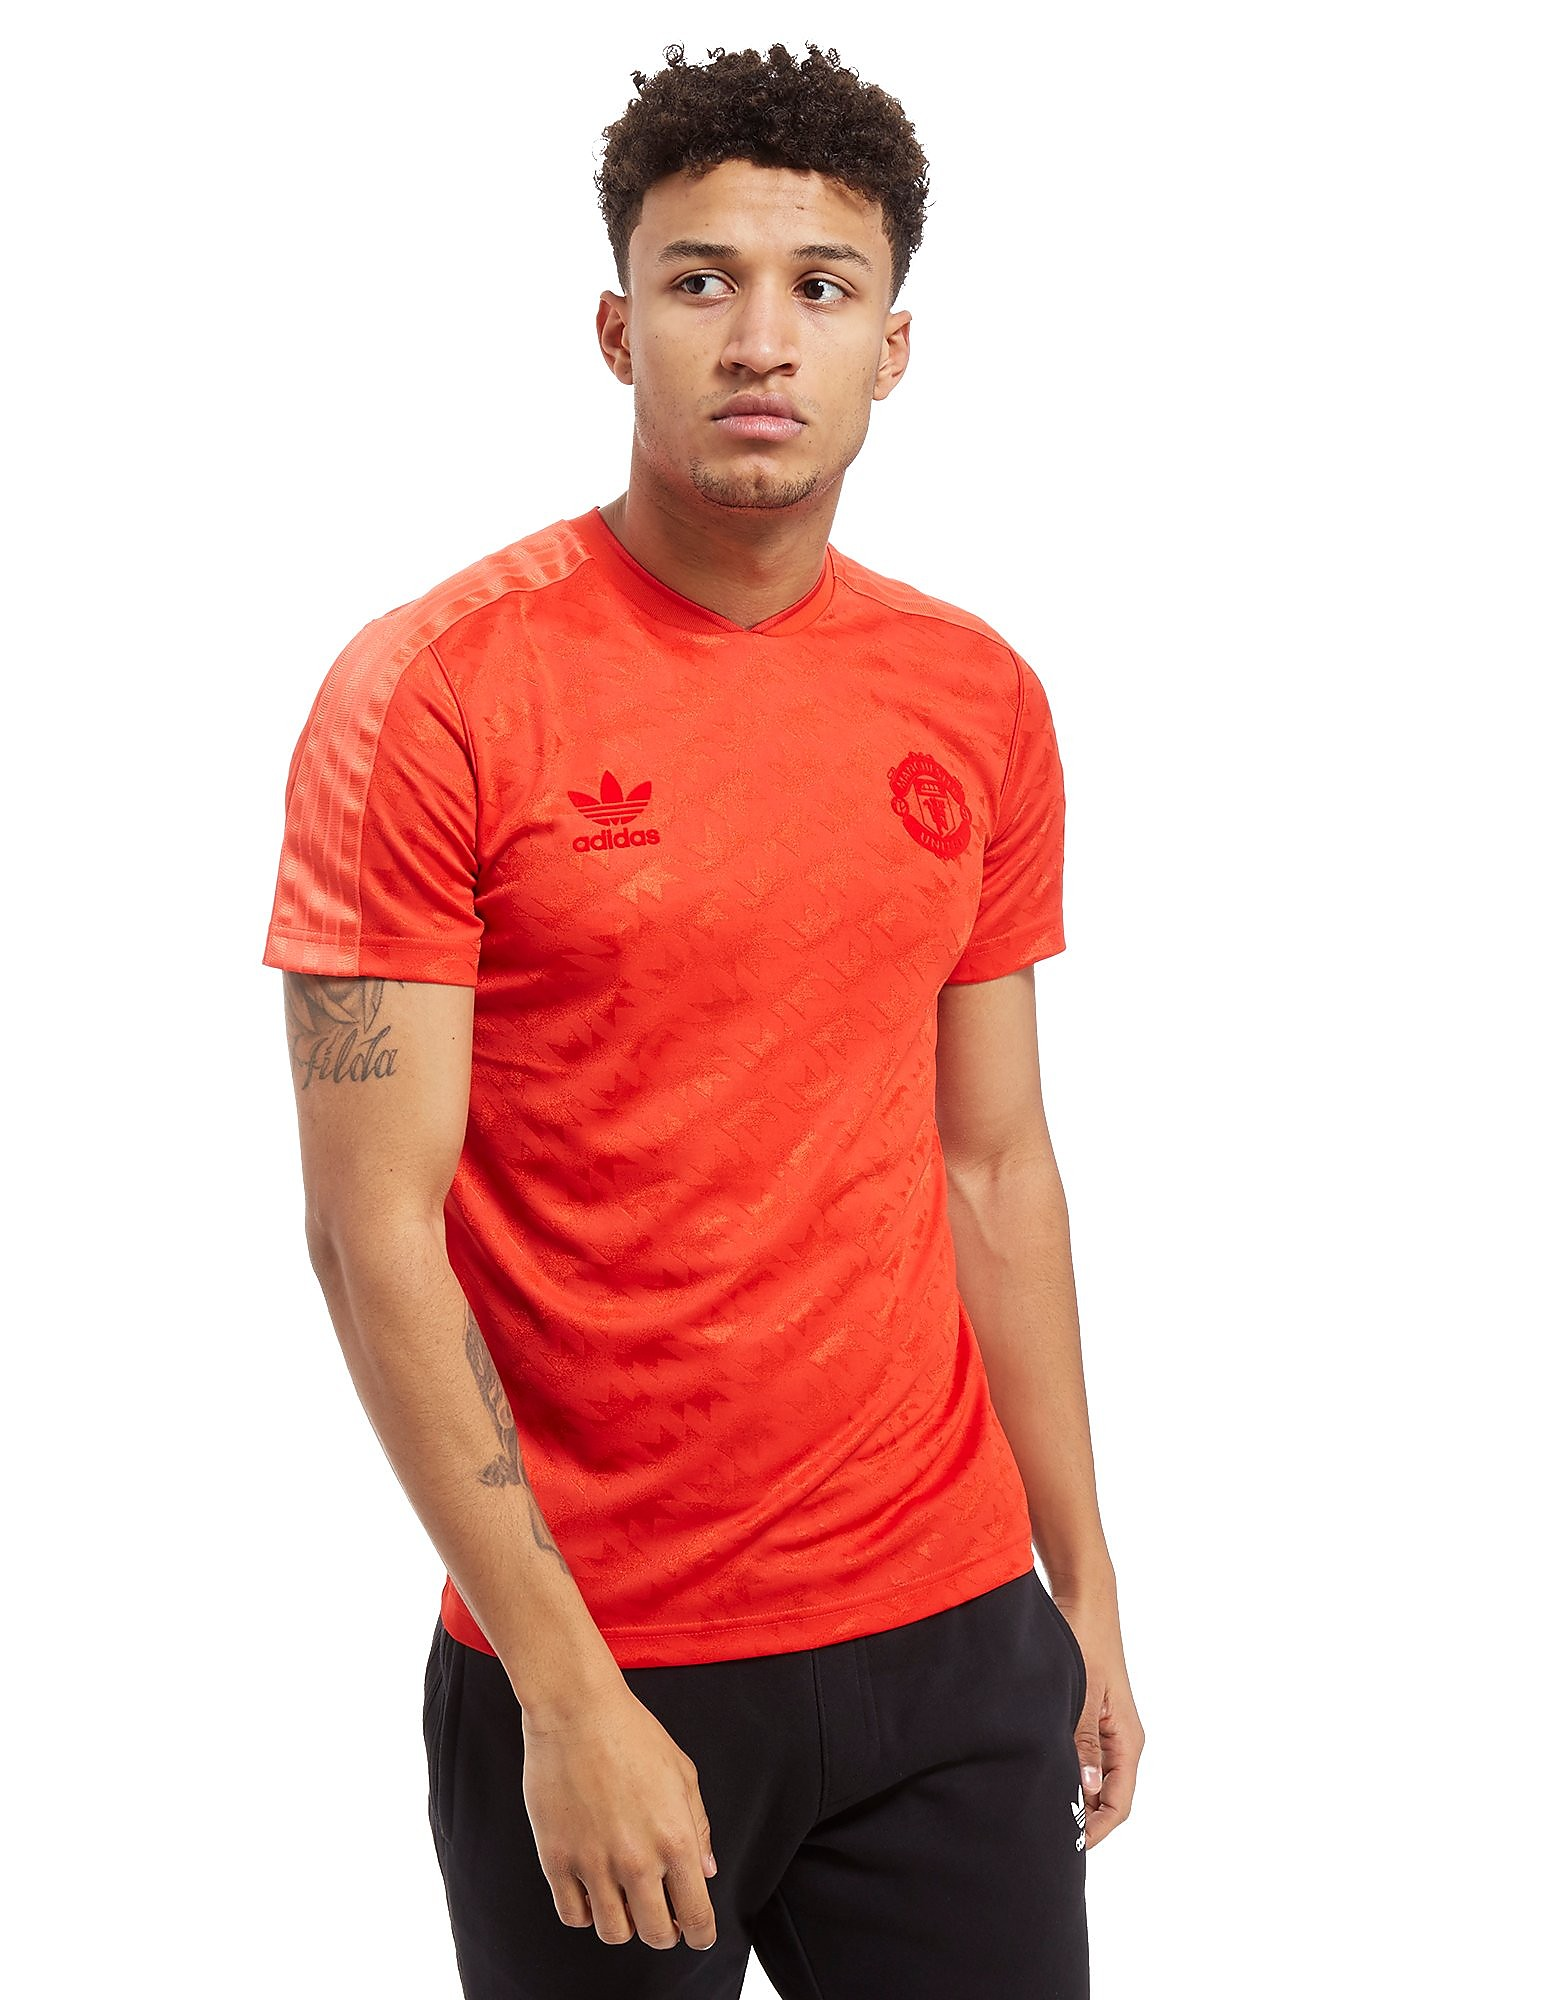 adidas Originals Manchester United 2017 T-Shirt